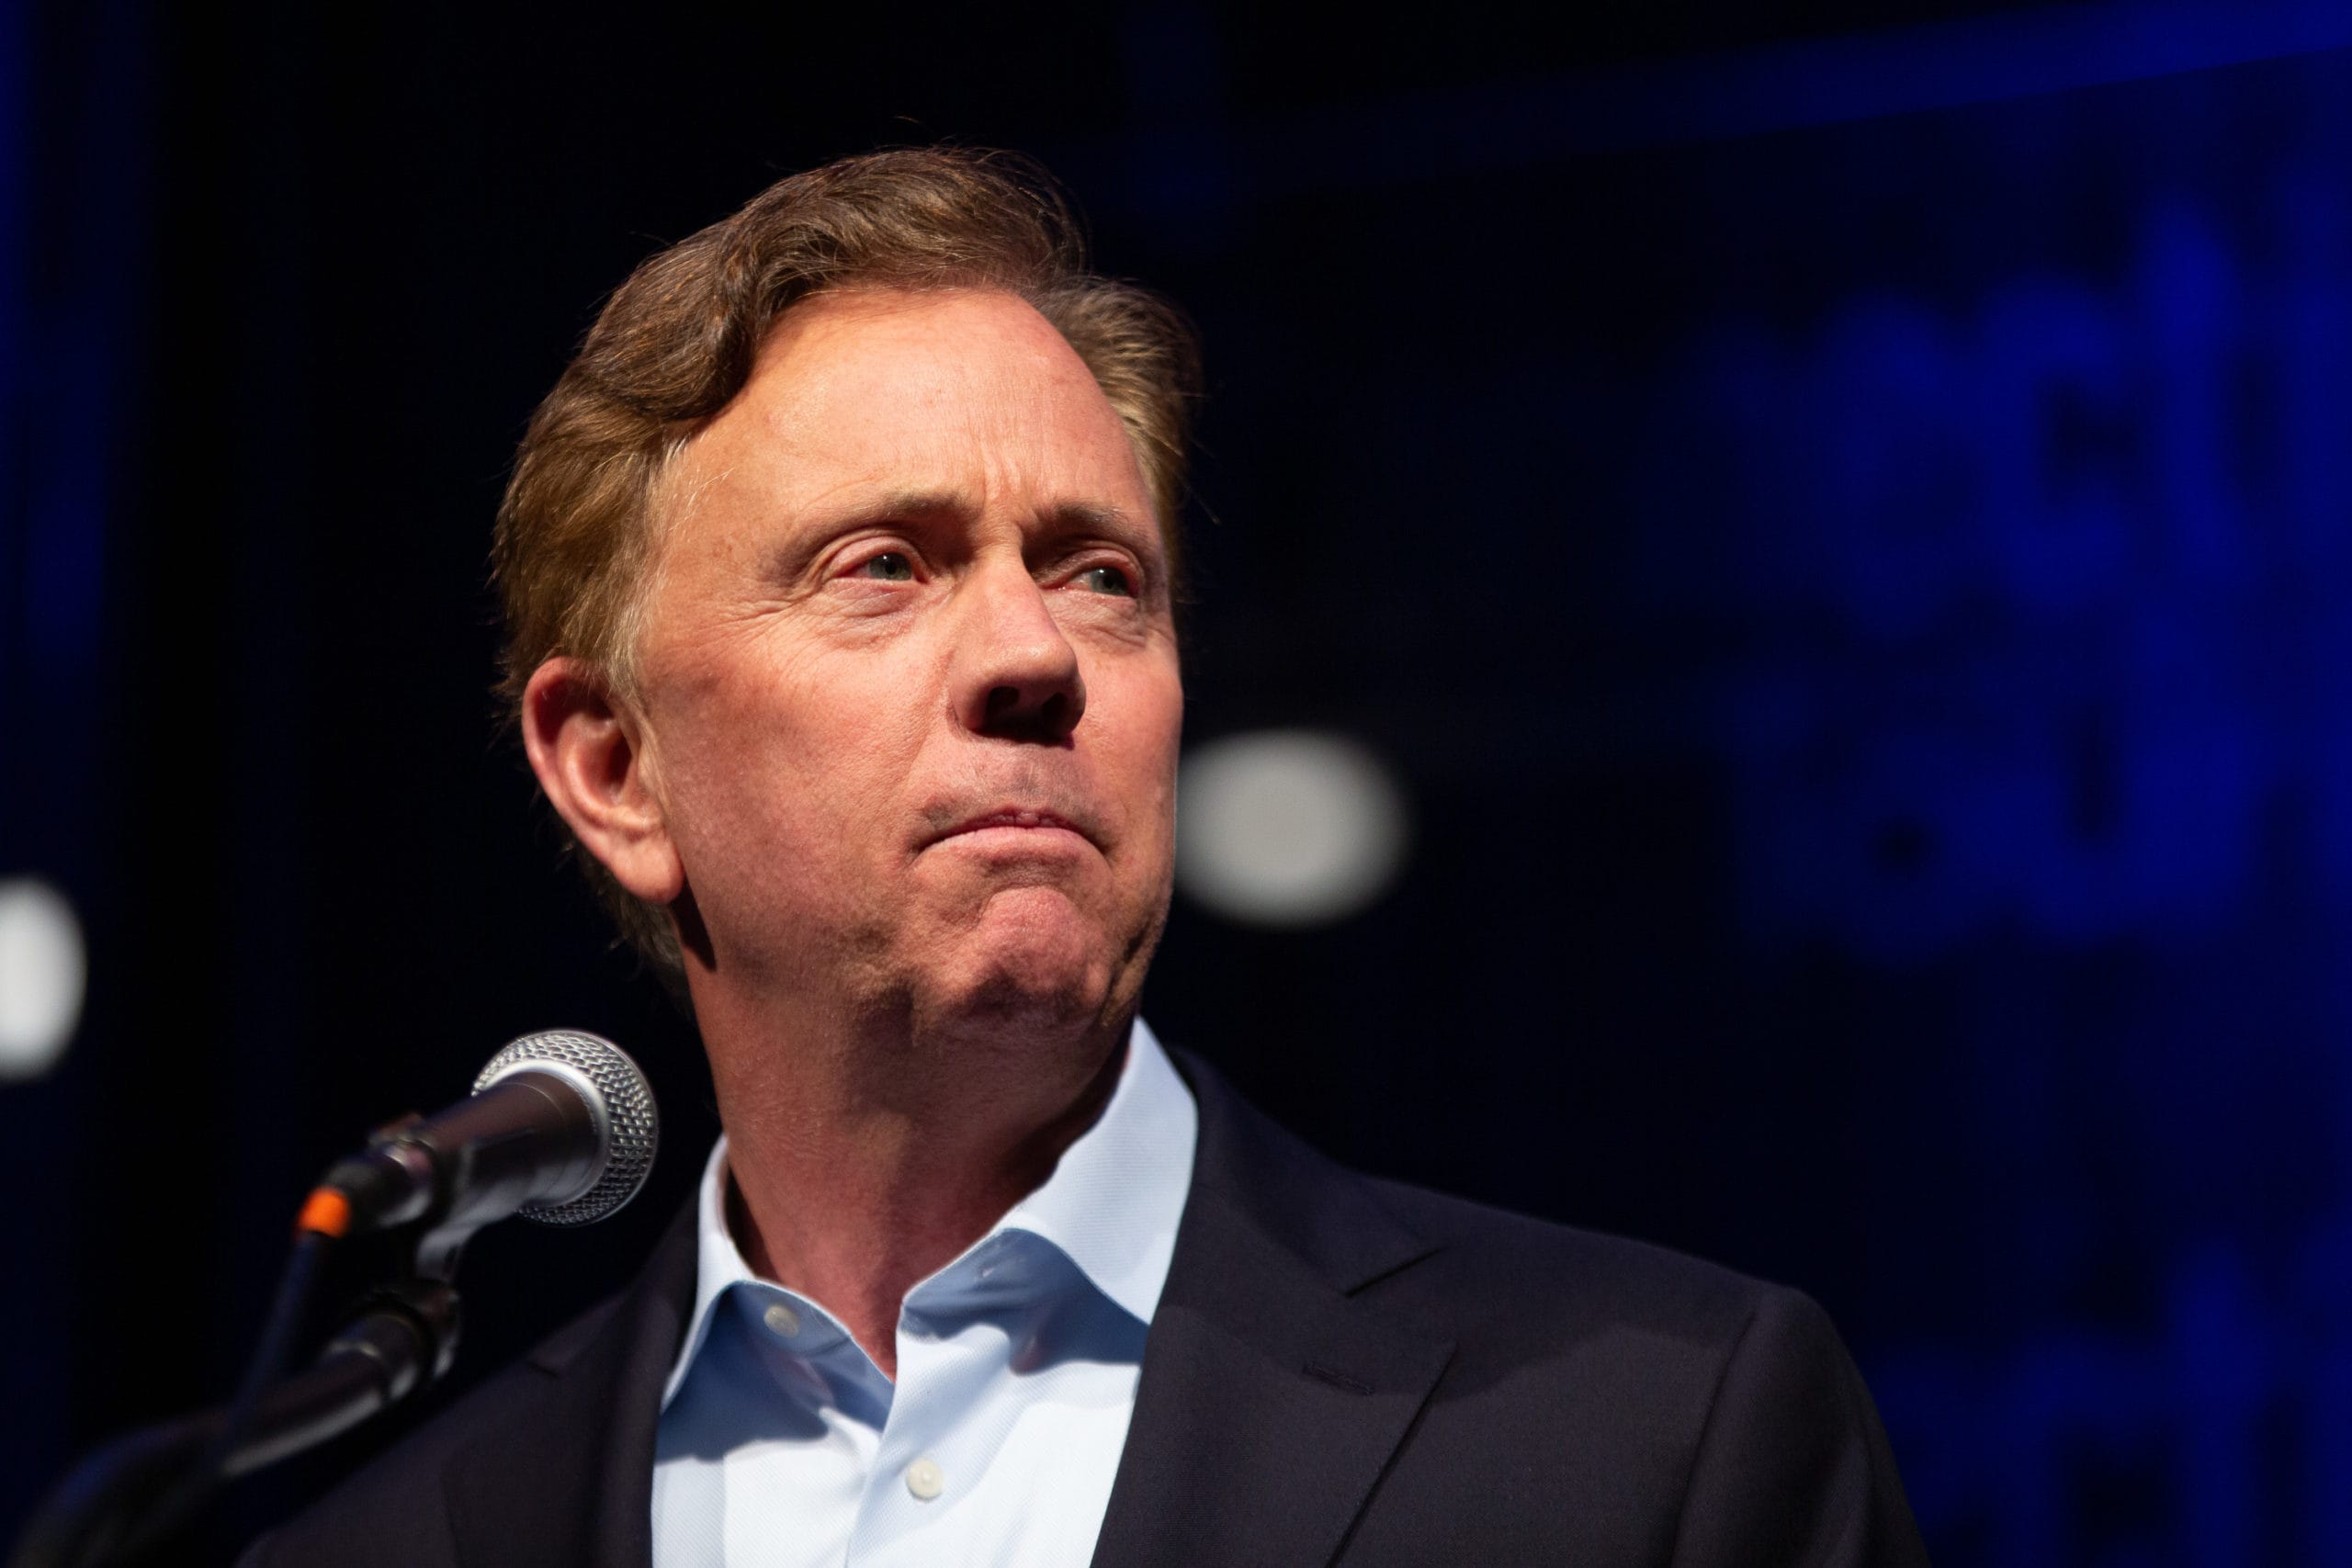 Lamont joins governors of New York, New Jersey in closing bars, gyms, movie theaters as coronavirus spreads